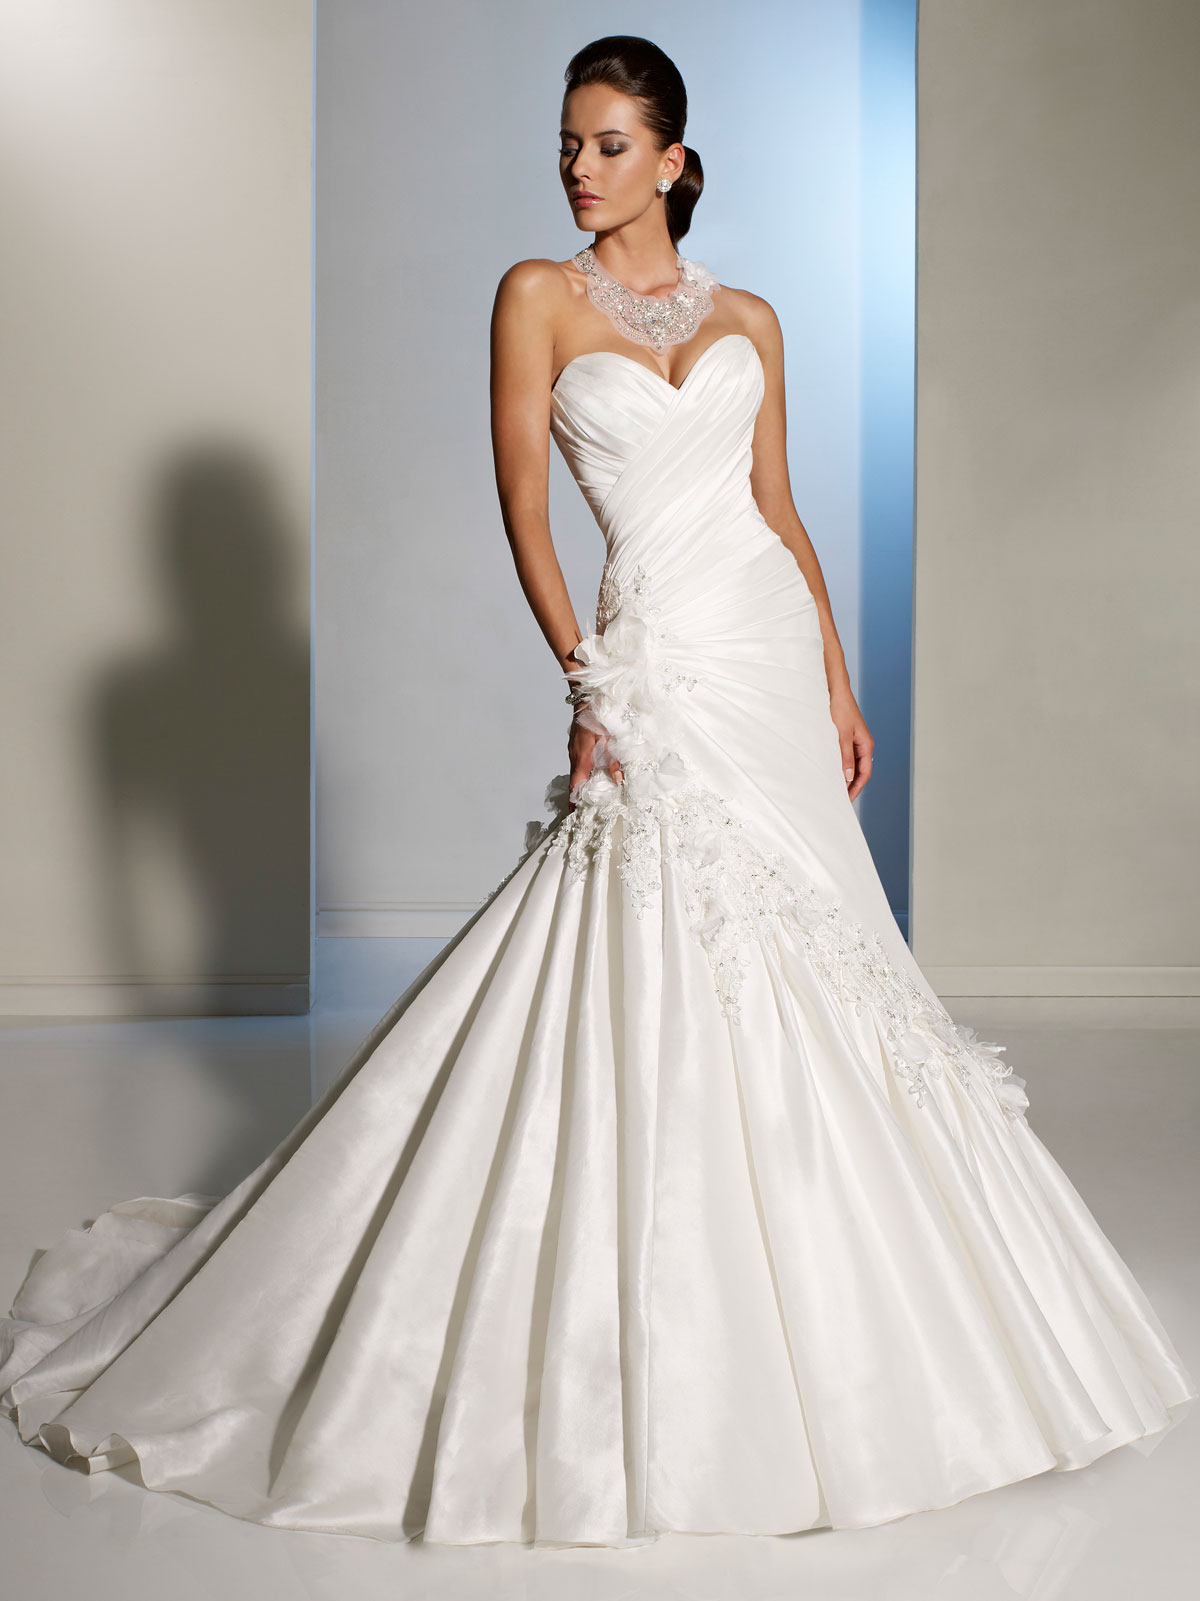 Sweetheart draped wedding gown